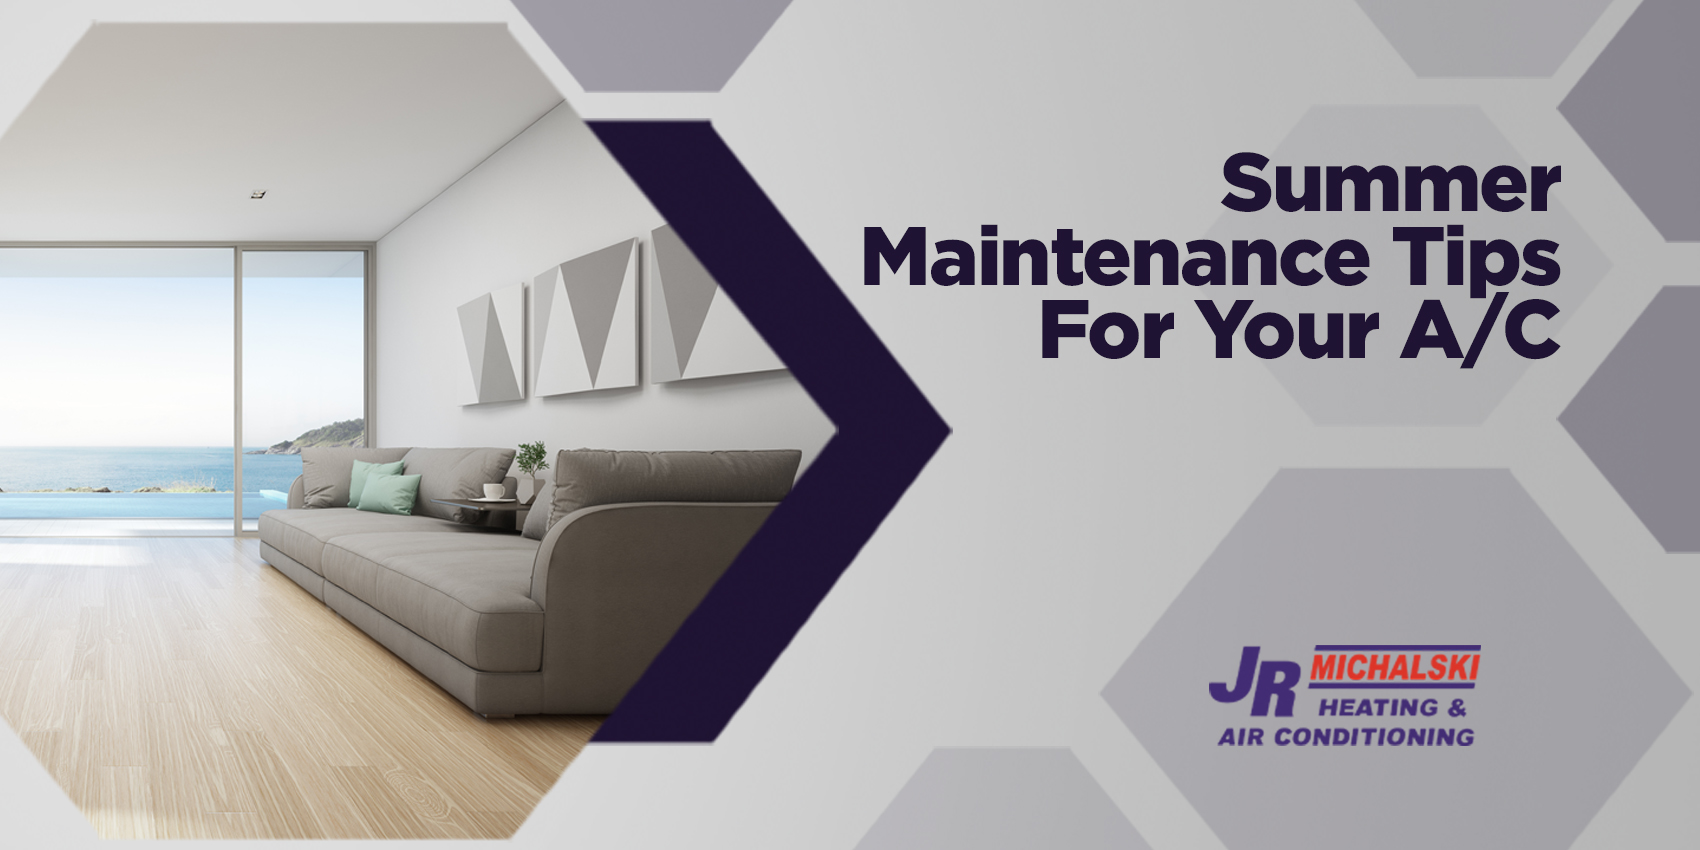 Summer Maintenance Tips For Your A/C